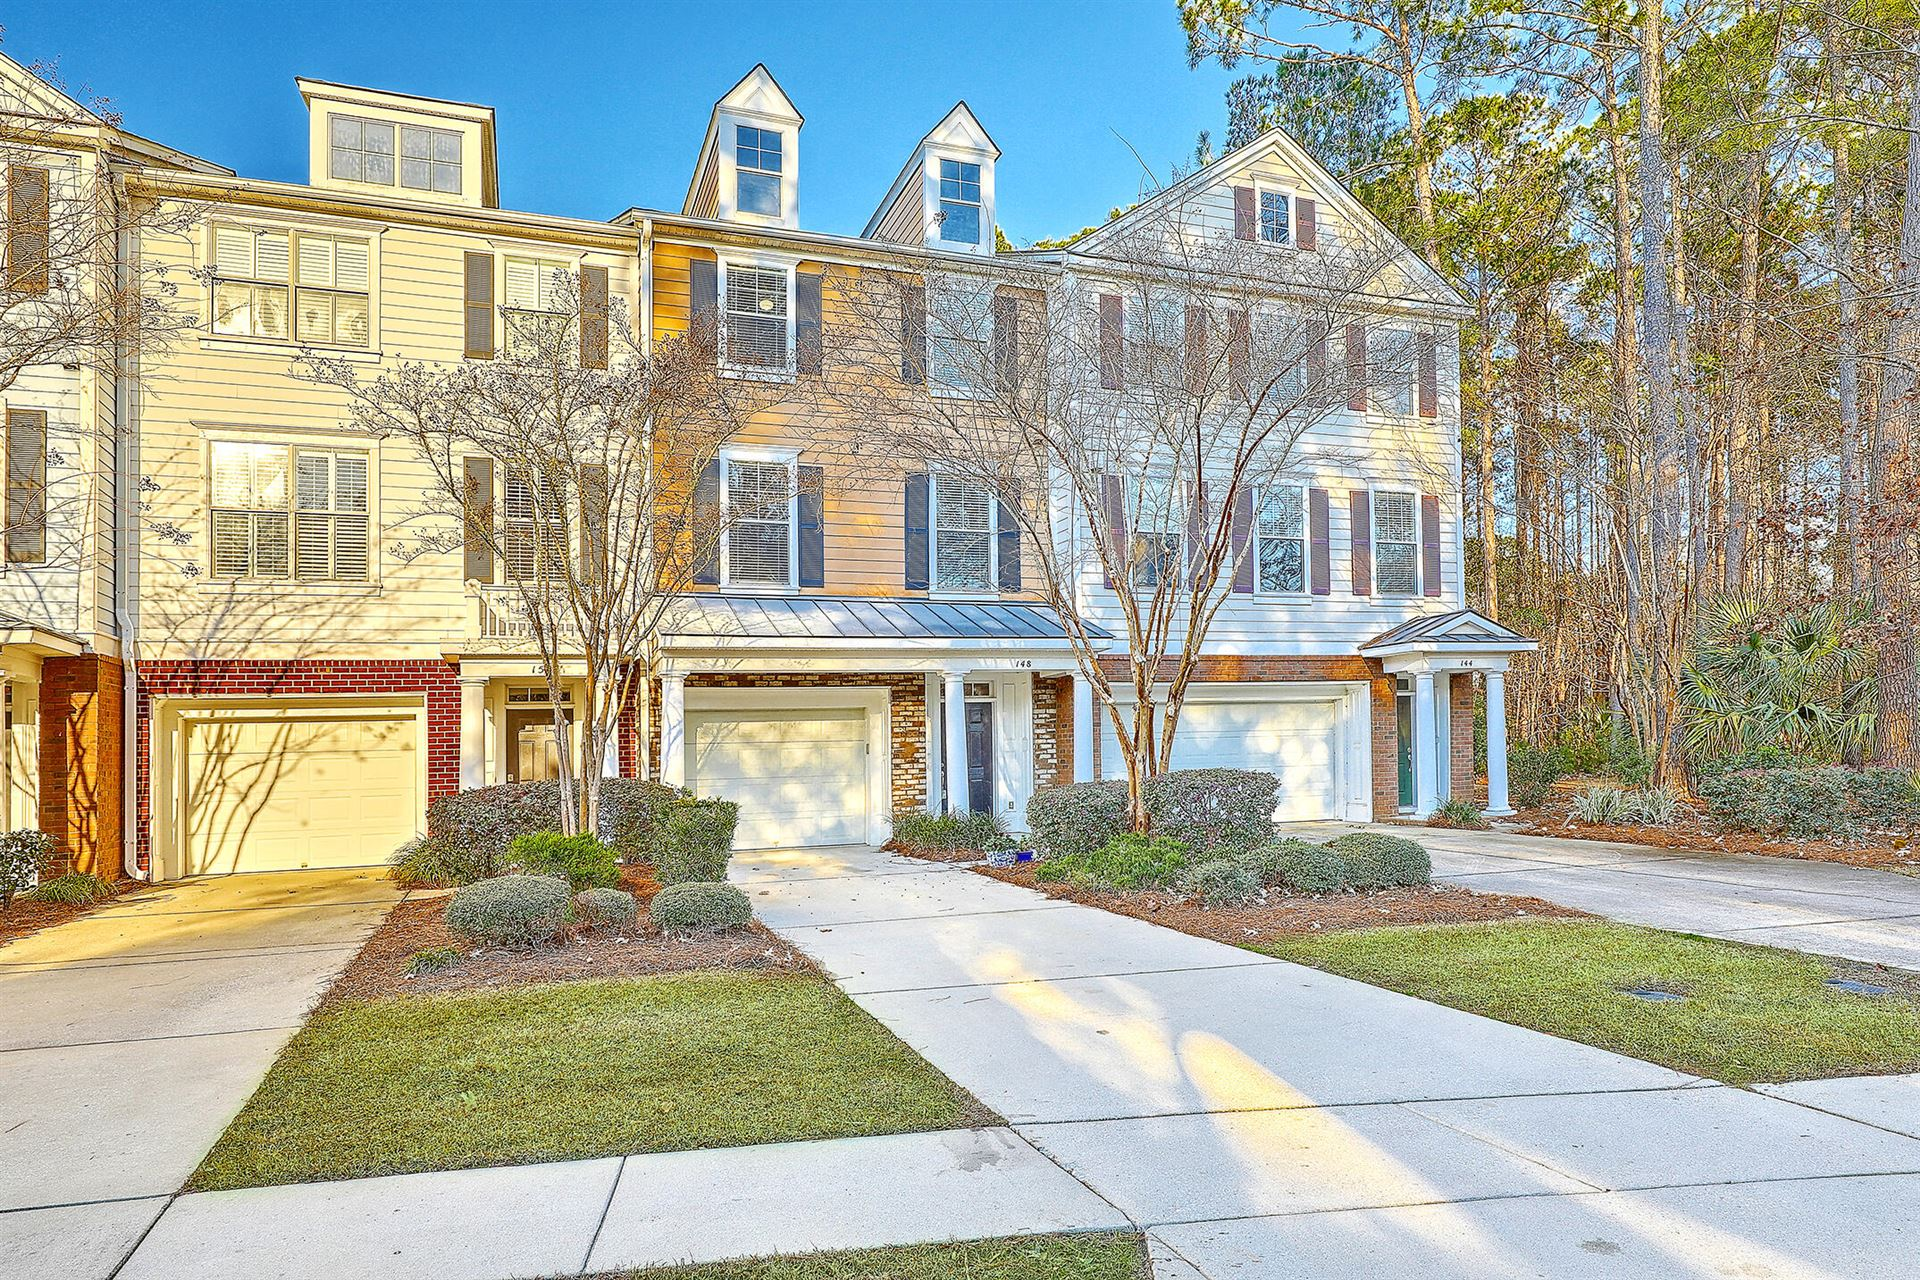 Photo of 148 Fair Sailing Road, Mount Pleasant, SC 29466 (MLS # 21002175)